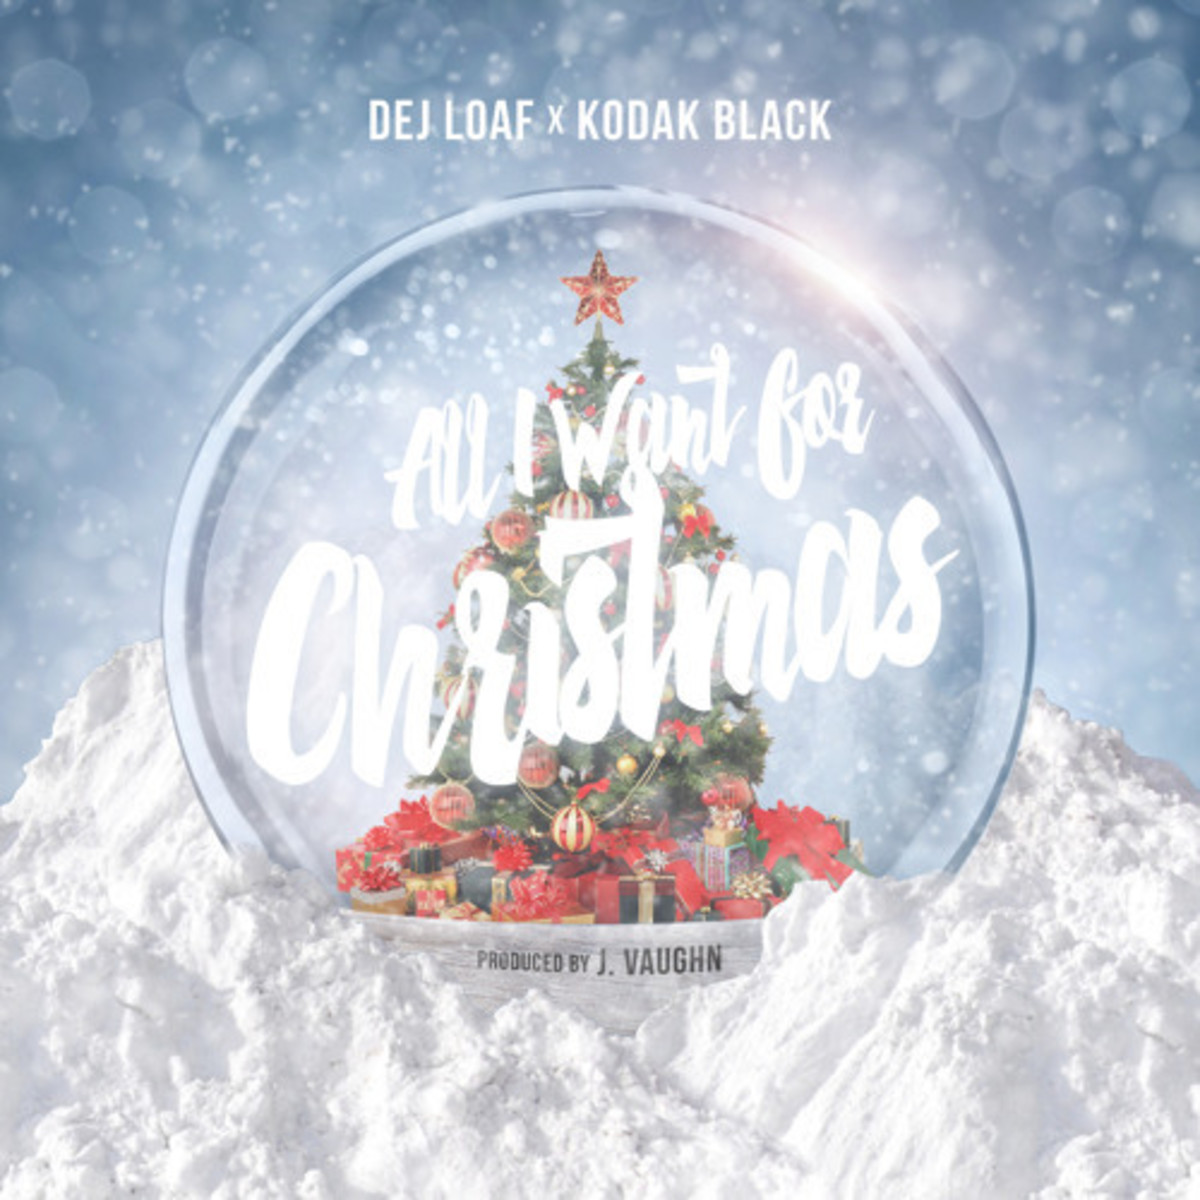 dej-loaf-all-i-want-for-christmas.jpg